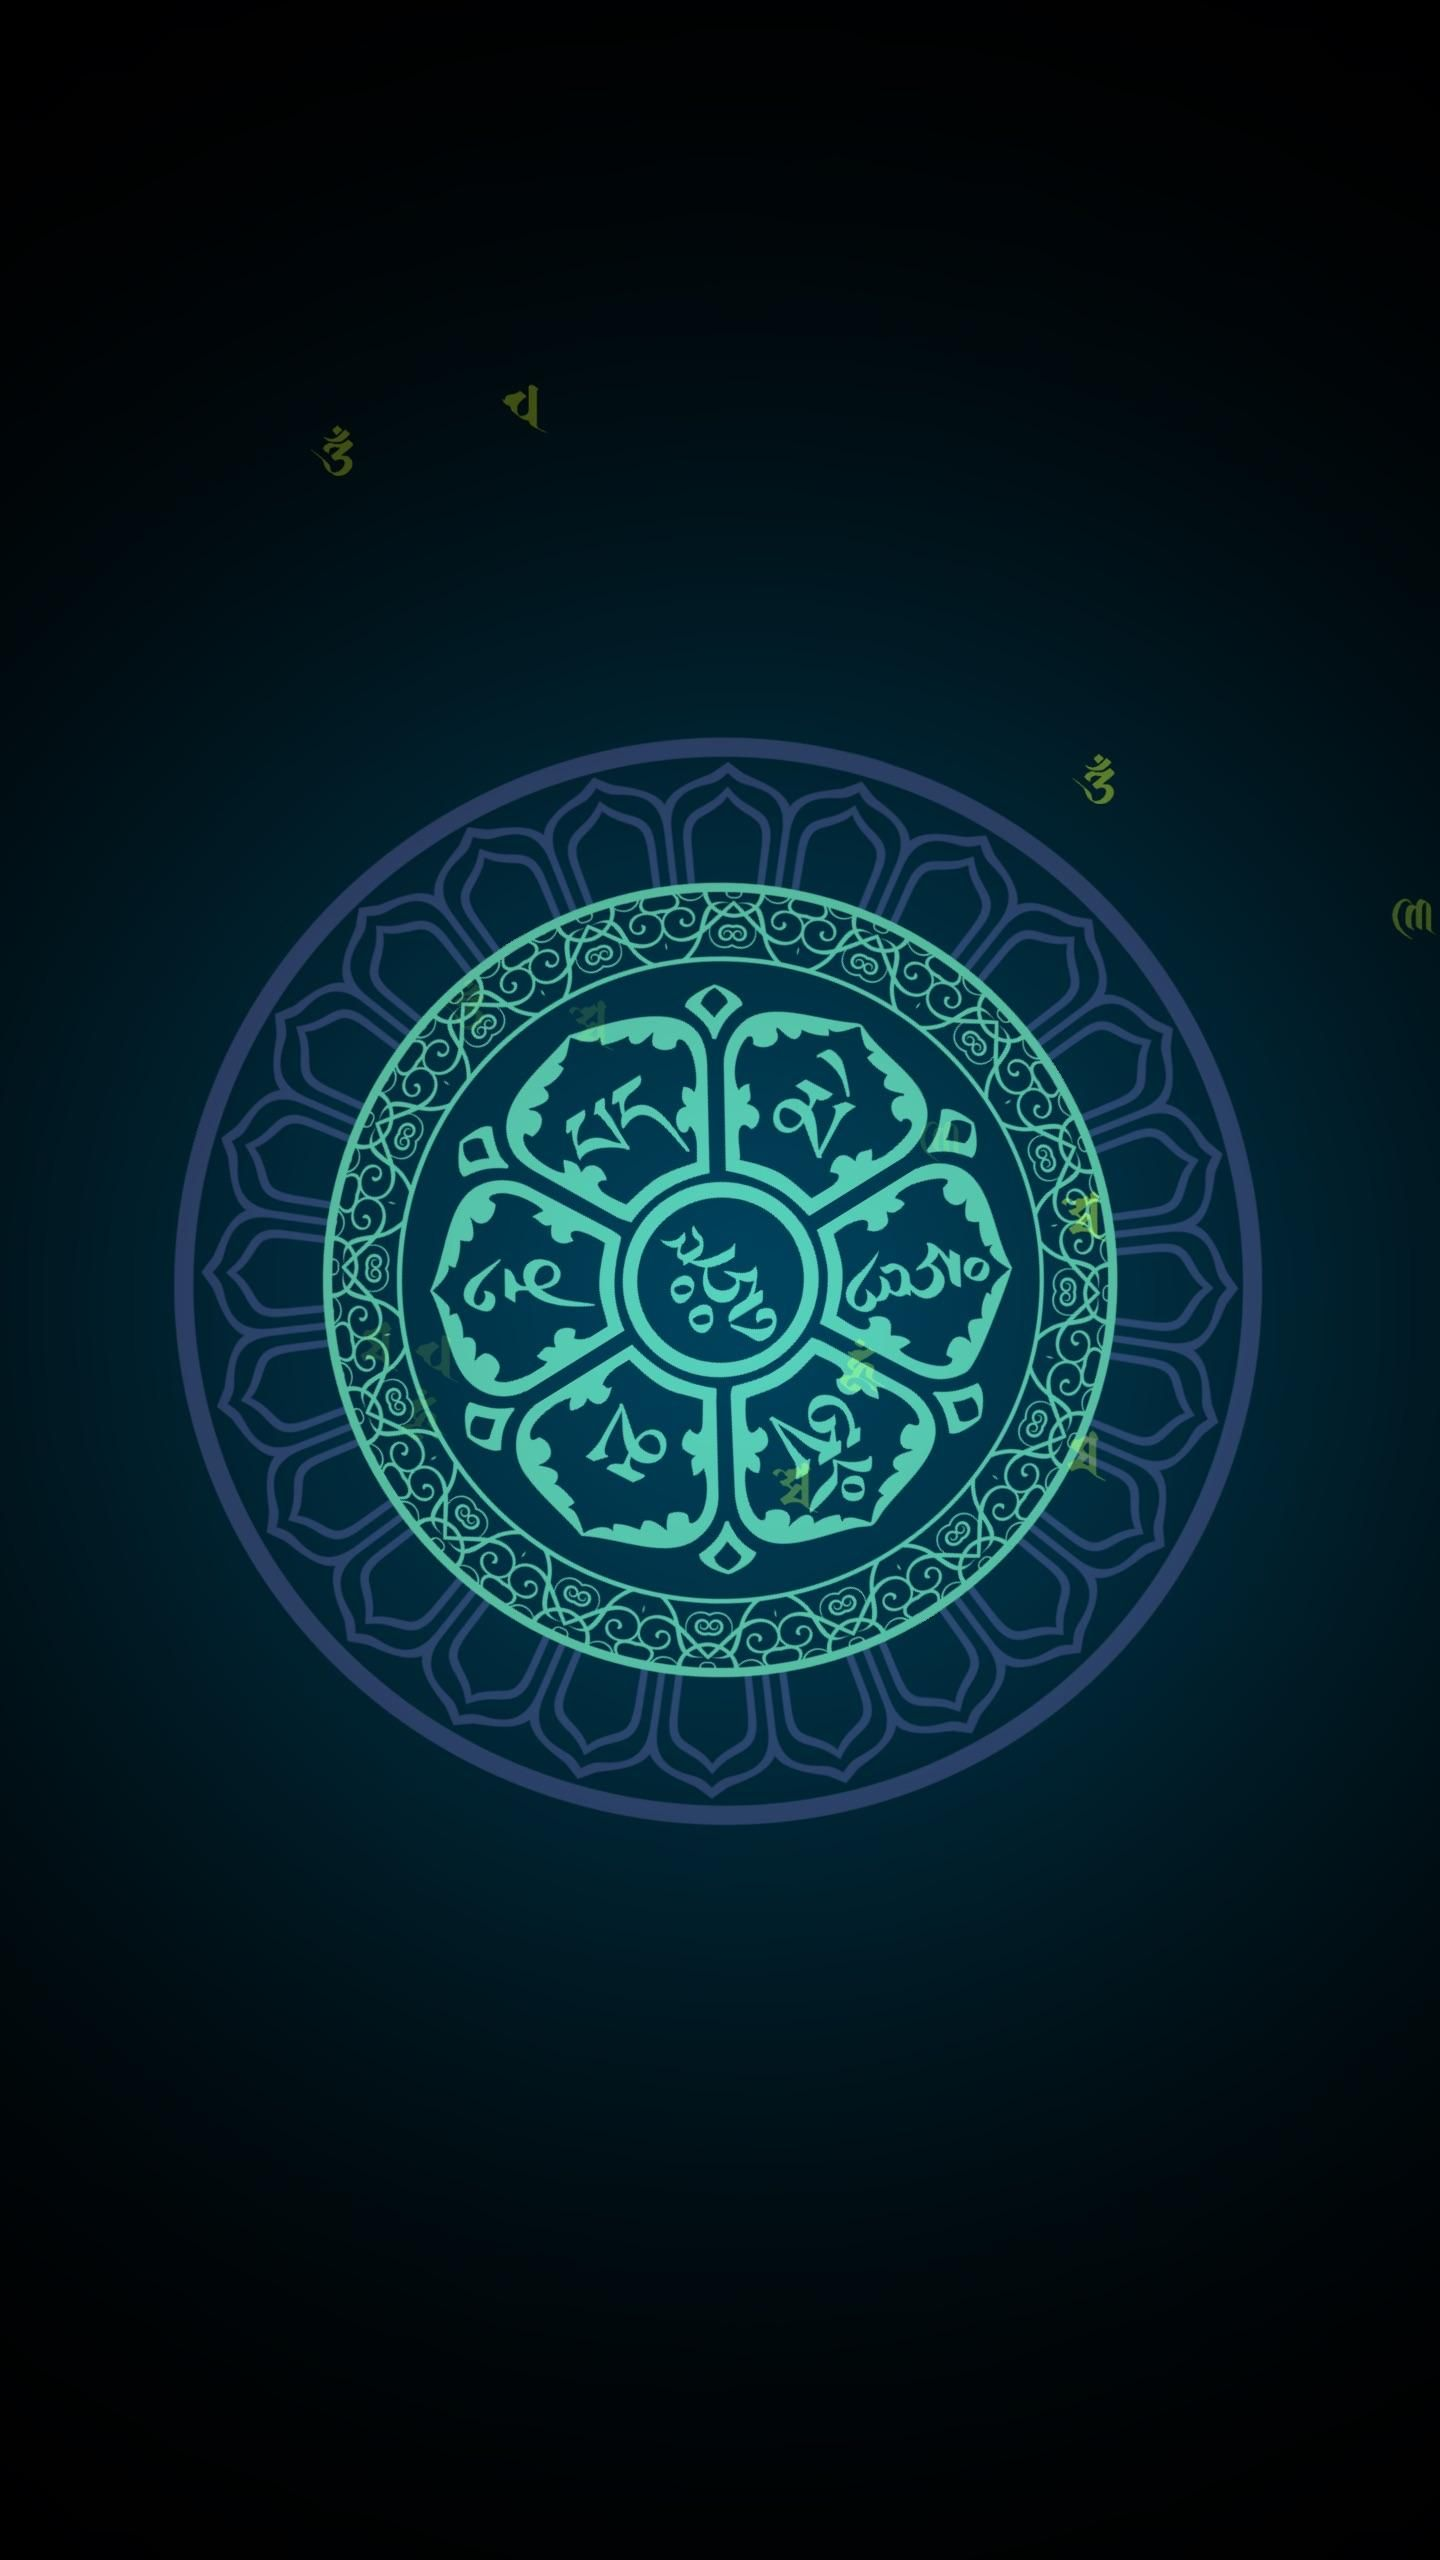 0bf054f16 Love this lotus flower of the Om mani padme hum mantra. Perfect for Oled  screens. Hope you enjoy it.